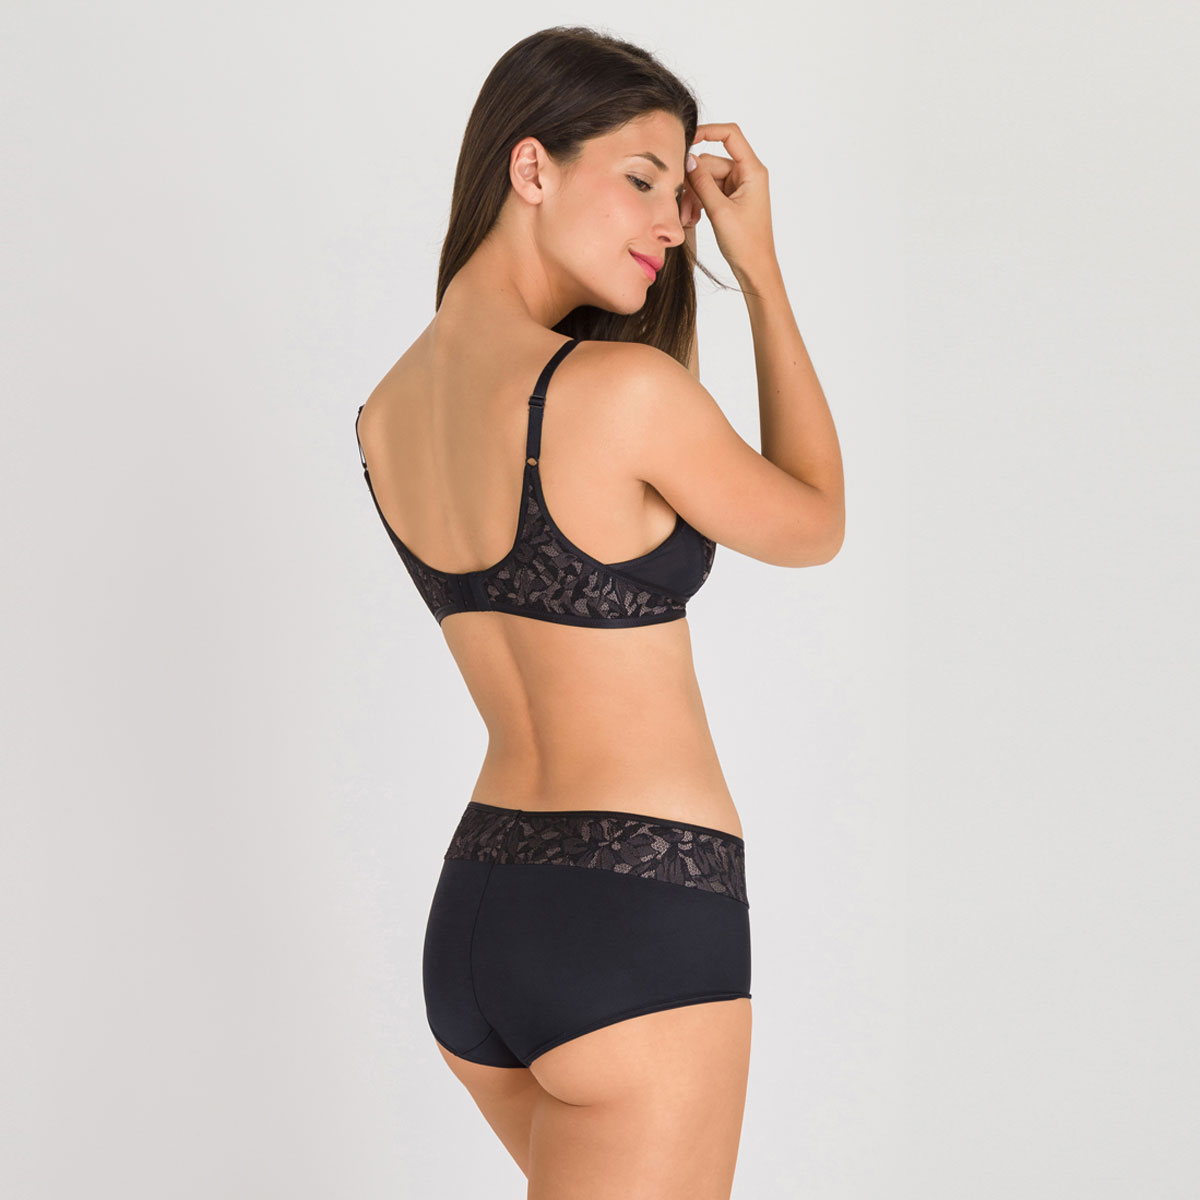 Soutien-gorge sans armatures noir gris - Ideal Beauty Lace-PLAYTEX